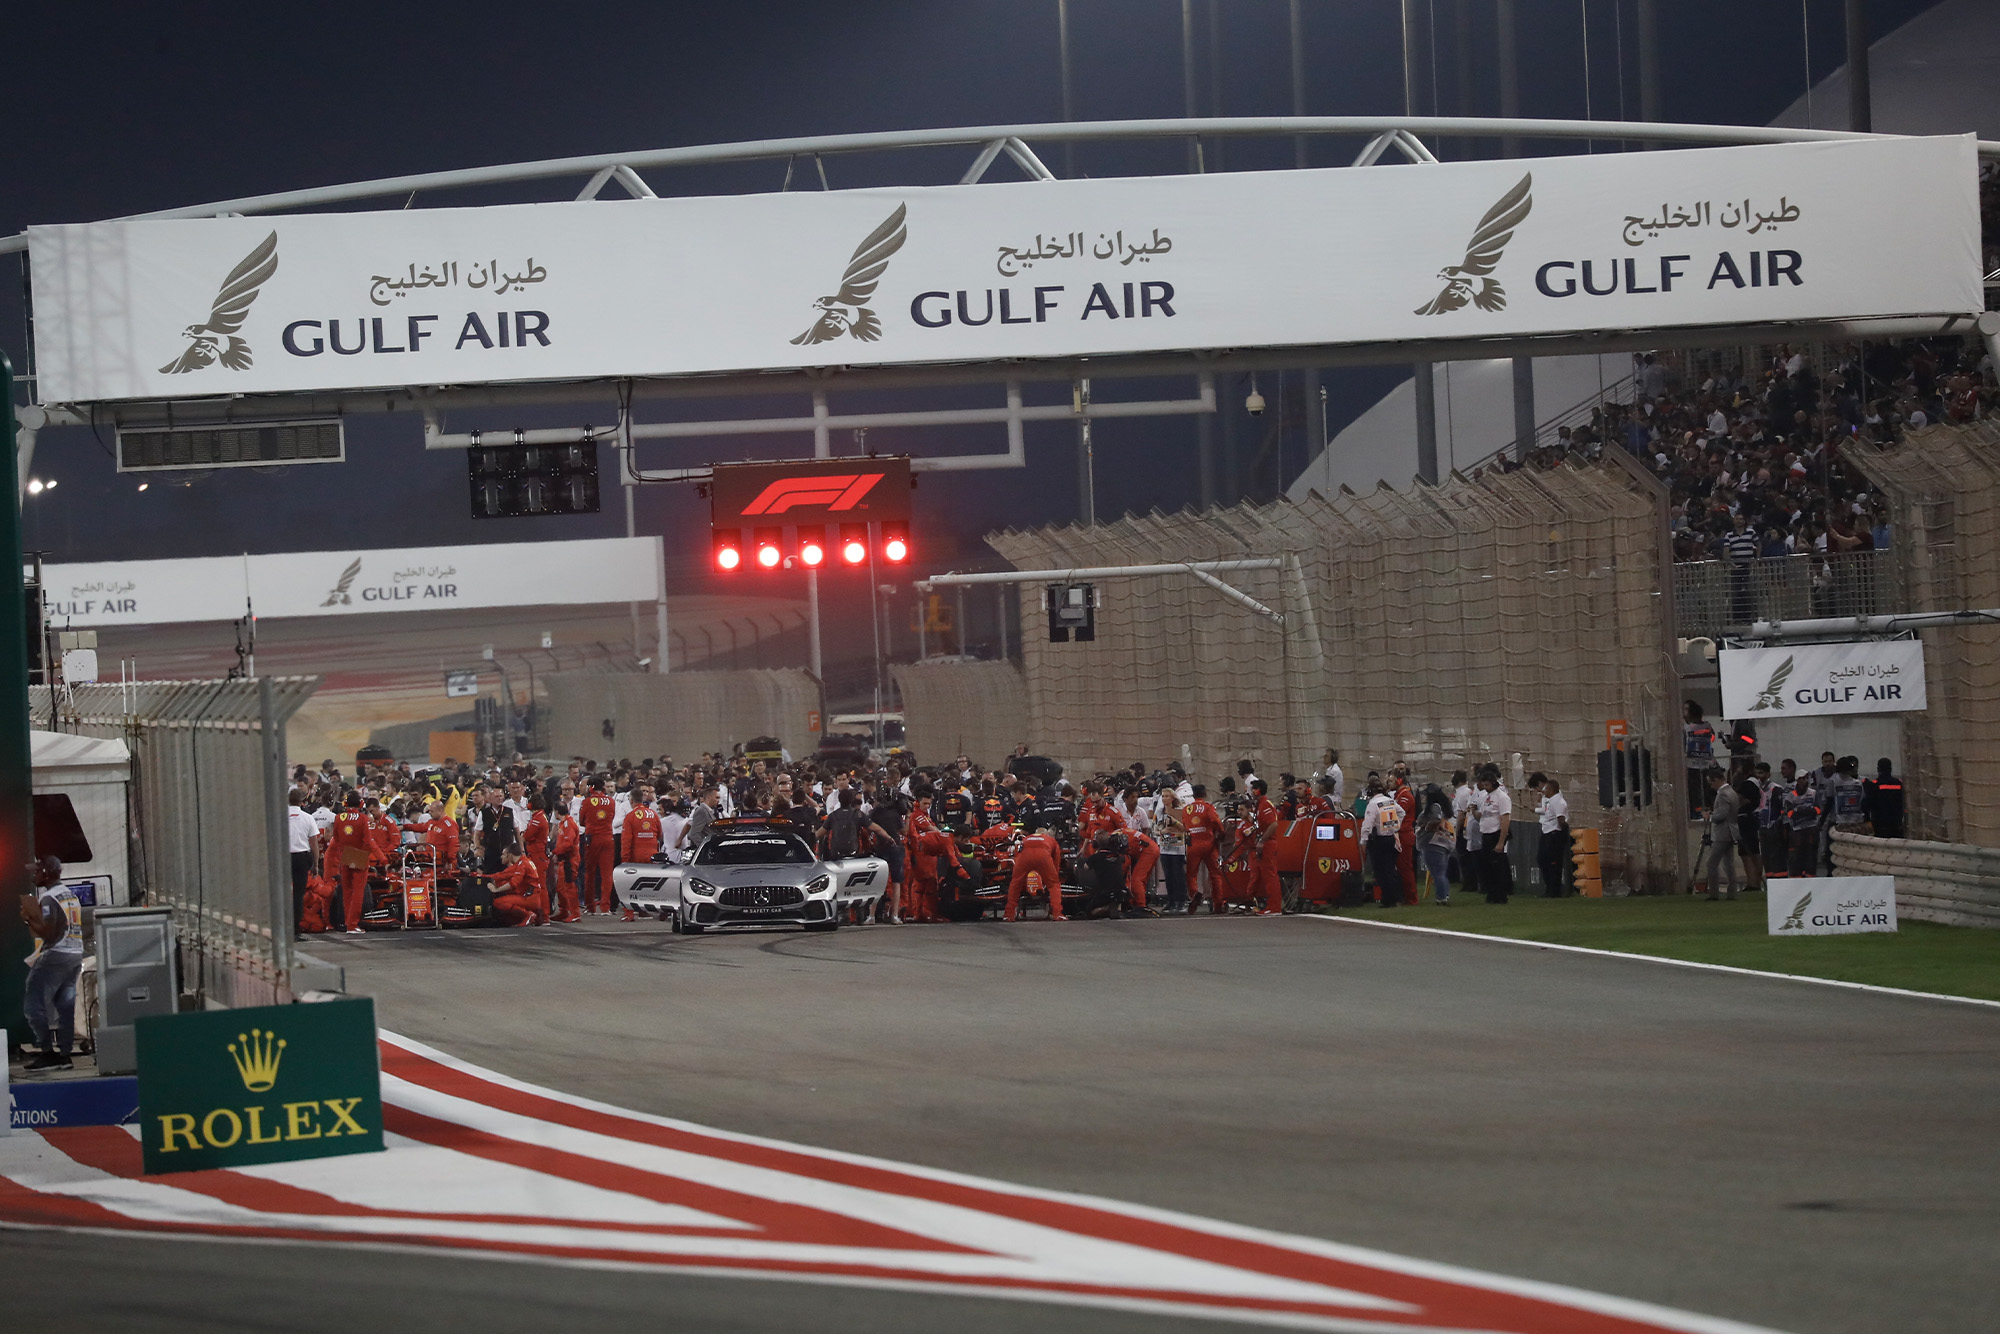 The start of the 2020 Bahrain Grand Prix